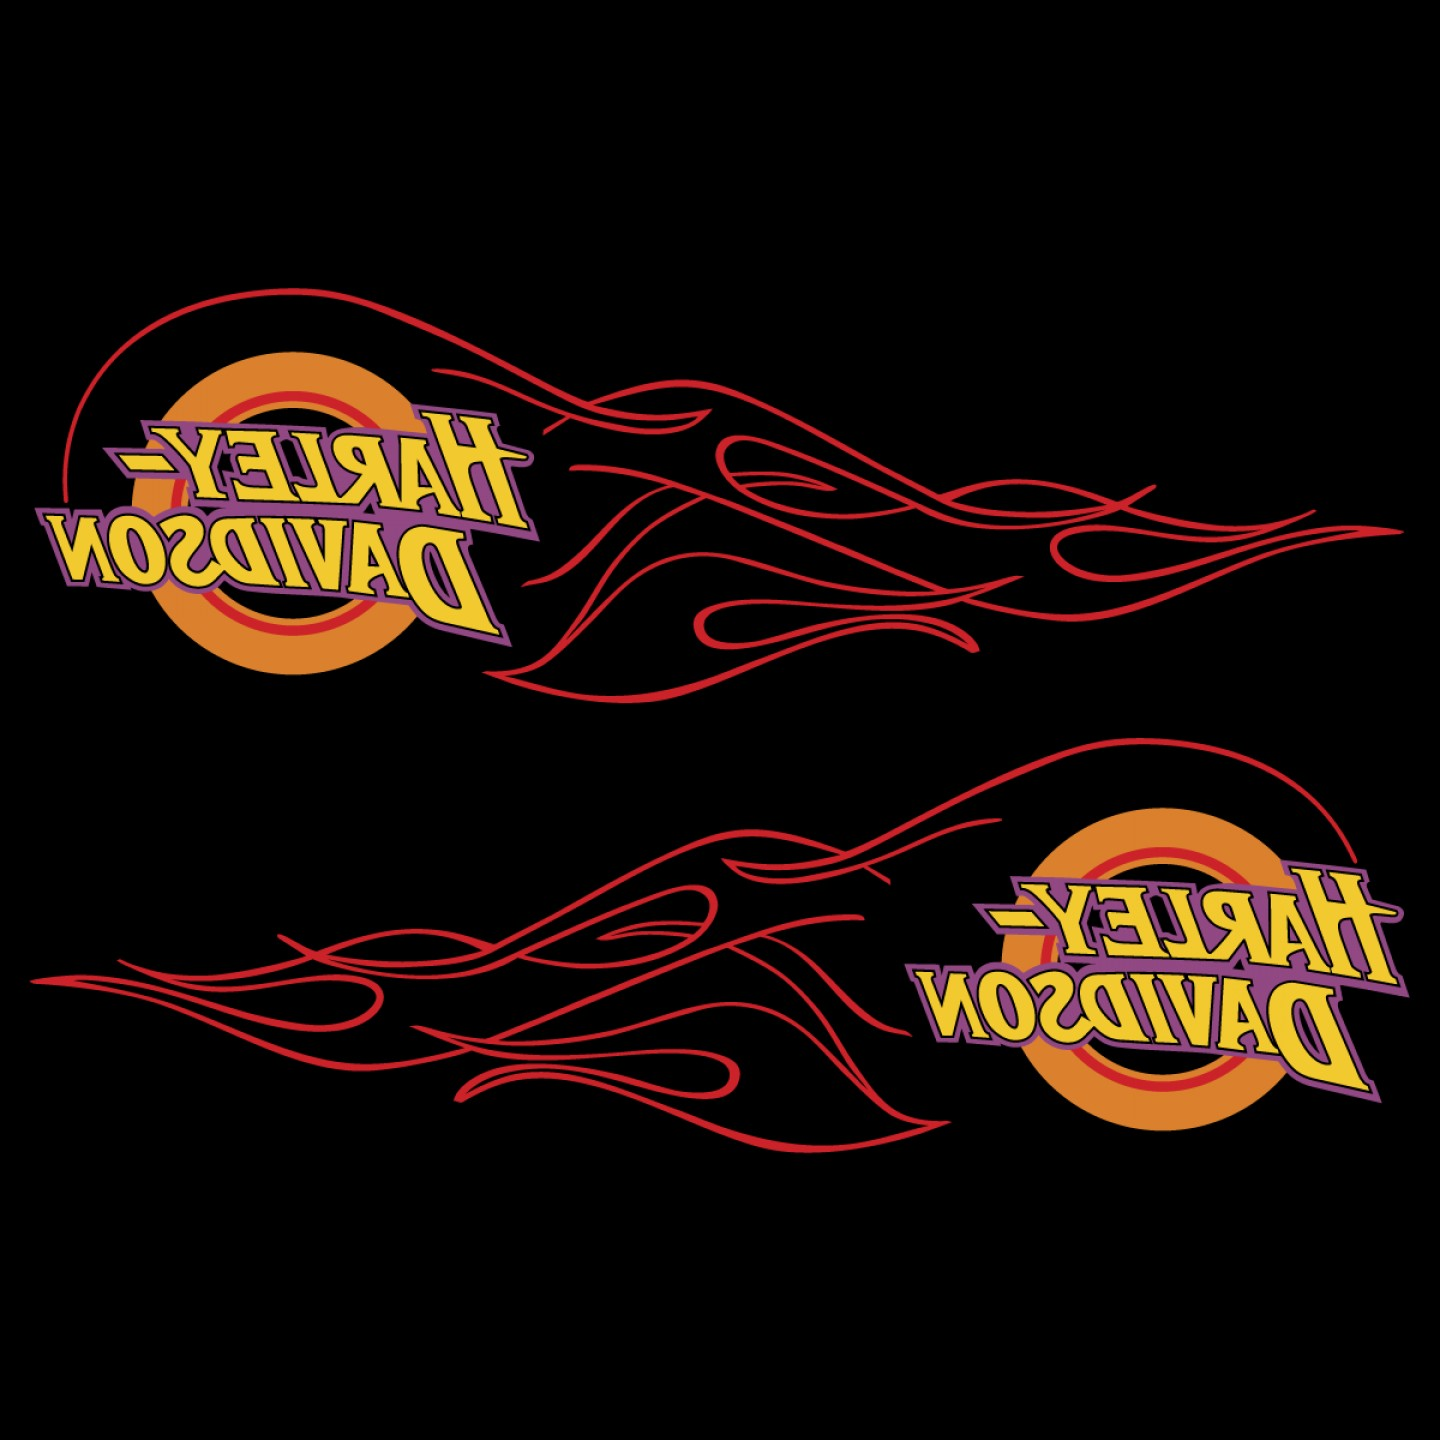 Harley-Davidson Flame Vector Silhouette: Harley Davidson Flame Tank Emblems Logo Vector Decal